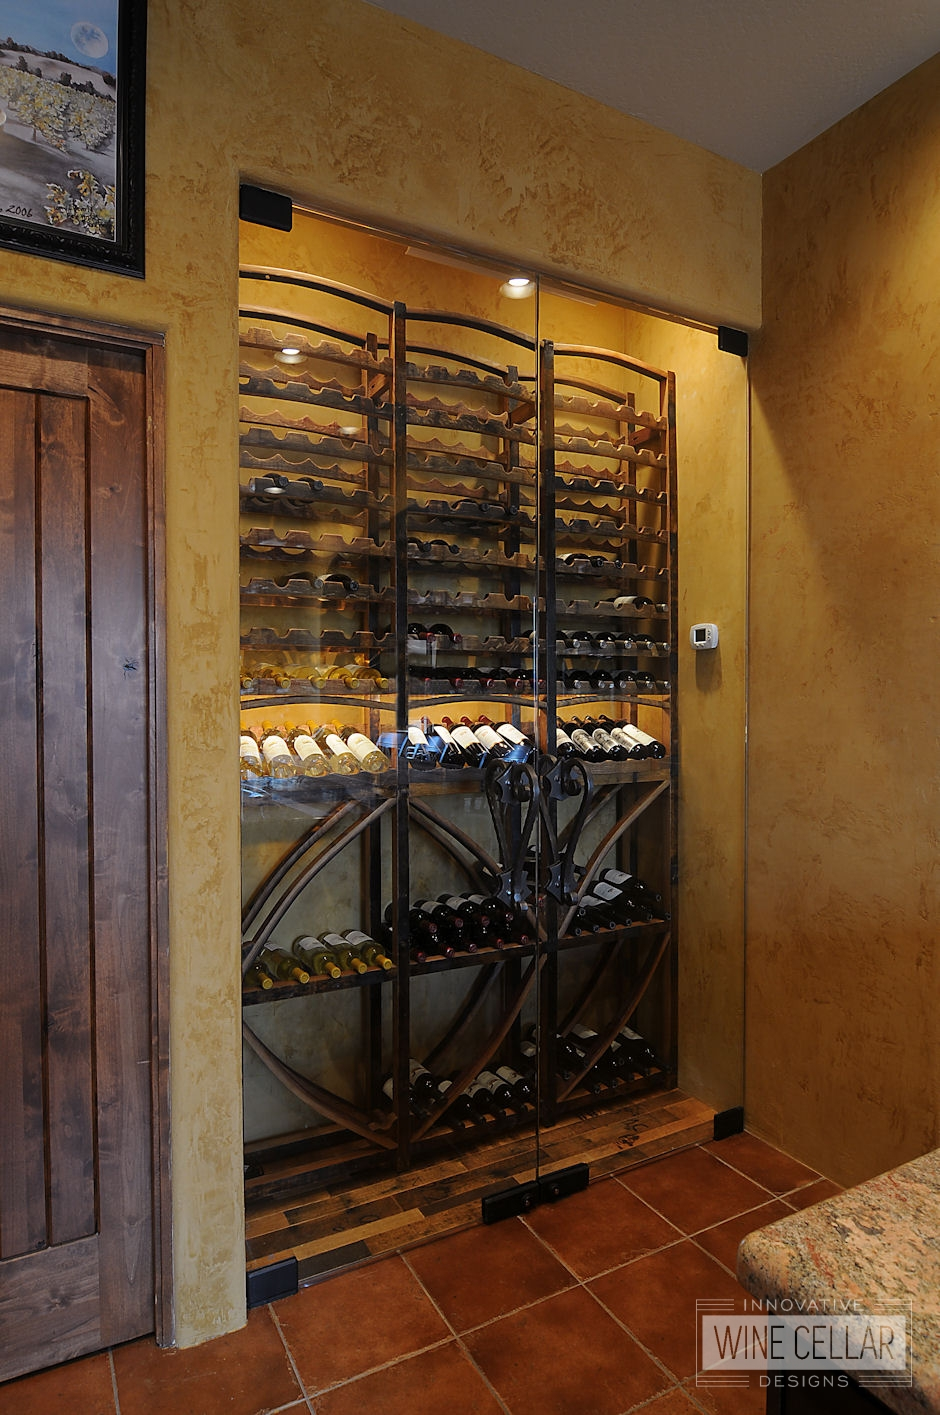 Reclaimed wine barrel racking in recessed glass wine cellar, design & install by Innovative Wine Cellar Designs.